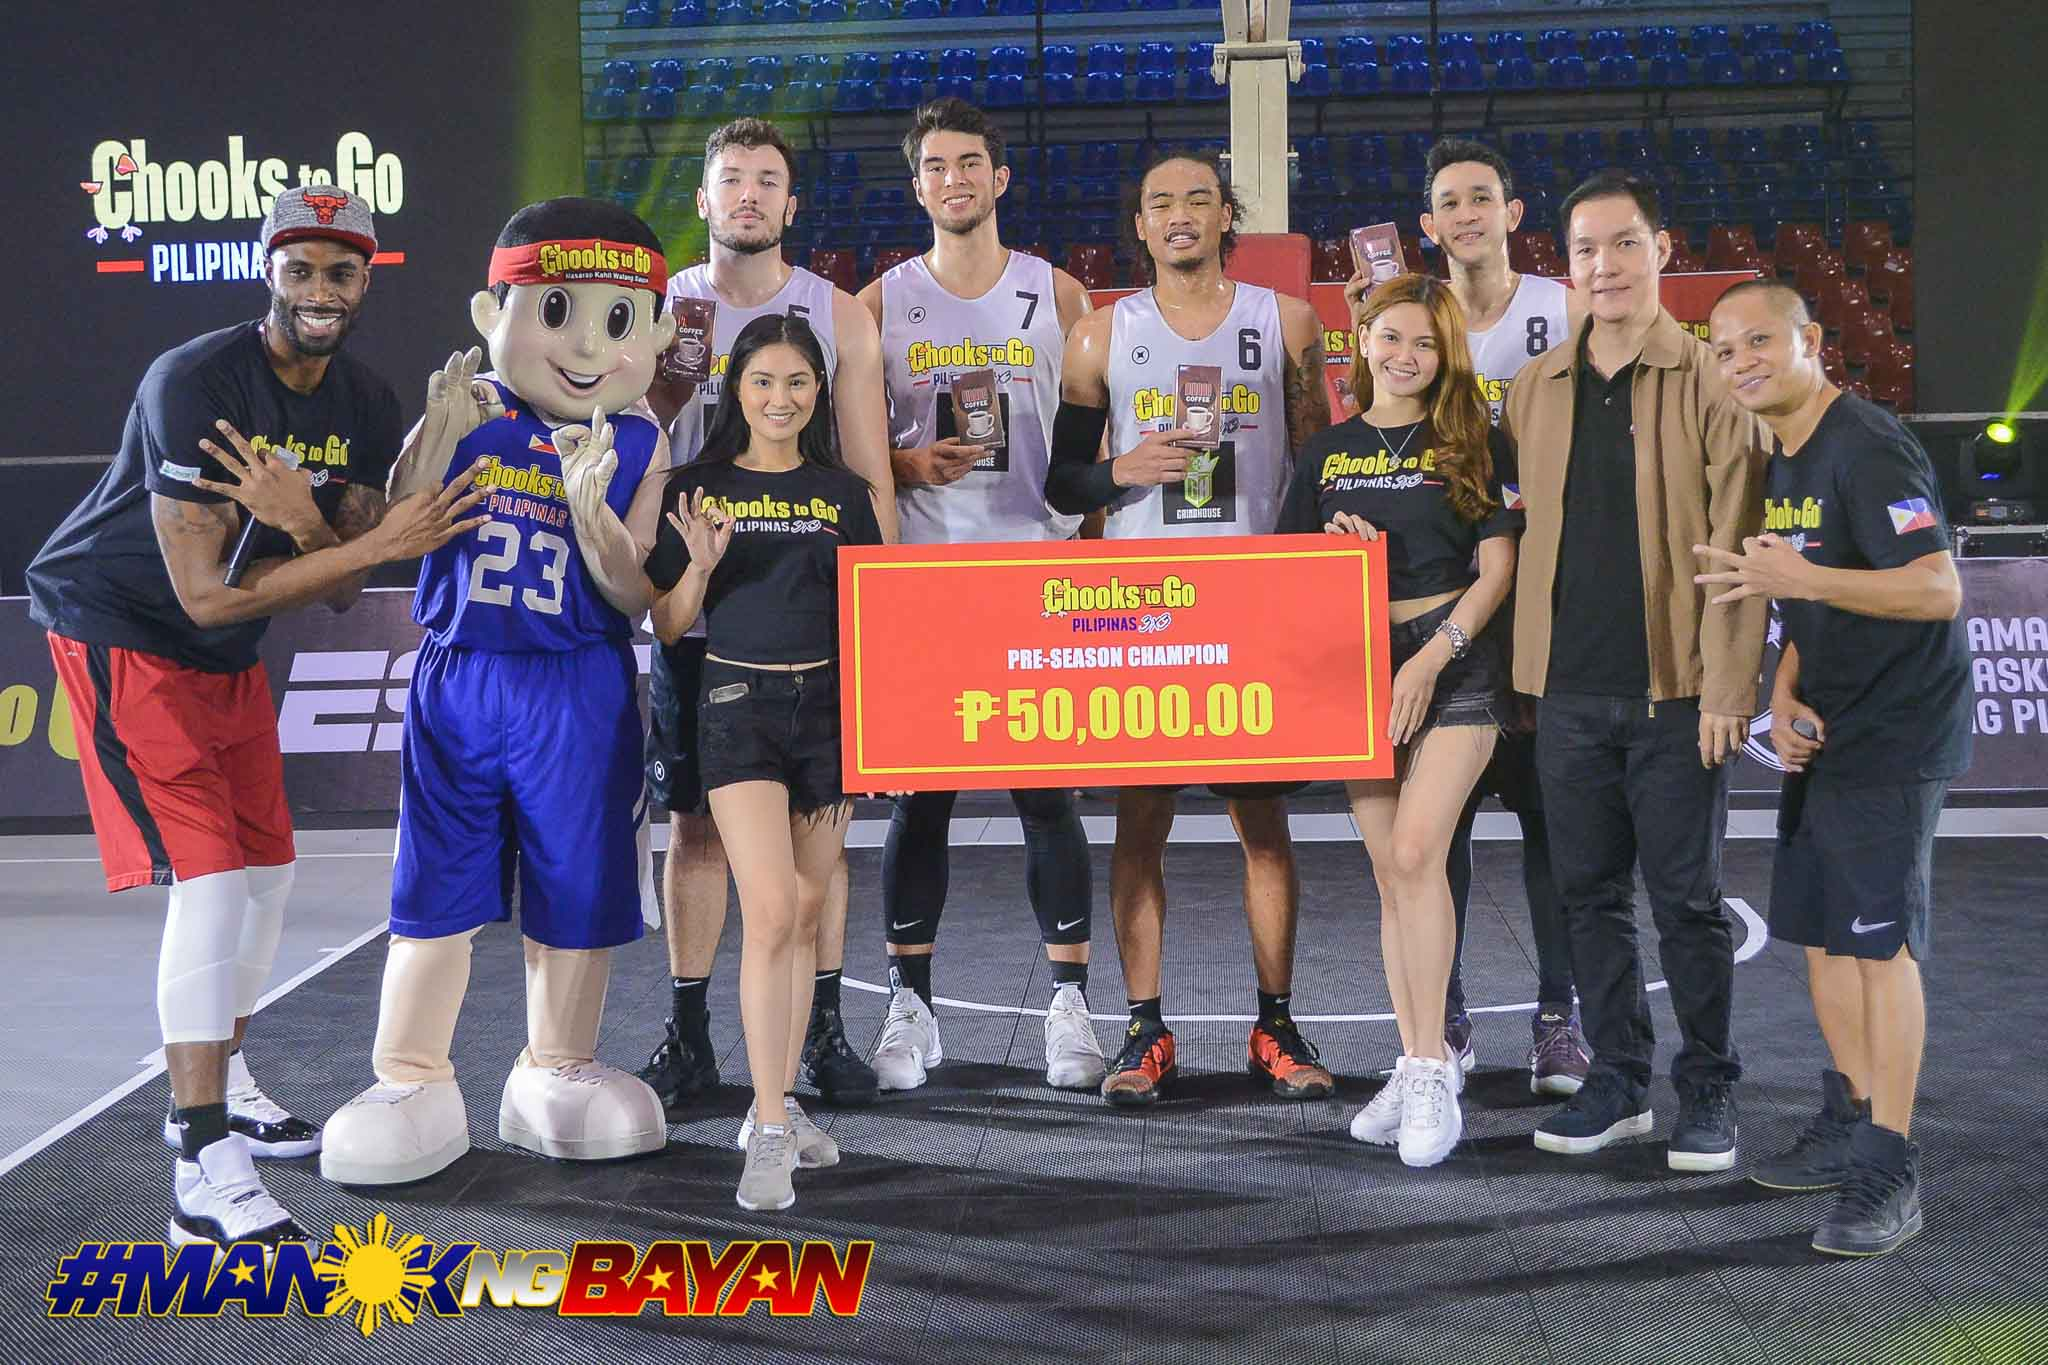 Tiebreaker Times Dylan Ababou rises, tows Pasig Kings to Chooks 3x3 preseason title 3x3 Basketball Chooks-to-Go Pilipinas 3x3 News  Vigan Baluarte Troy Rike Taylor Statham San Juan-Go for Gold Knights Pasig-Grindhouse Kings Mac Cadona Joshua Munzon John Wilson Dylan Ababou Bataan Risers 2019 Chooks-to-Go Pilipinas 3x3 Season